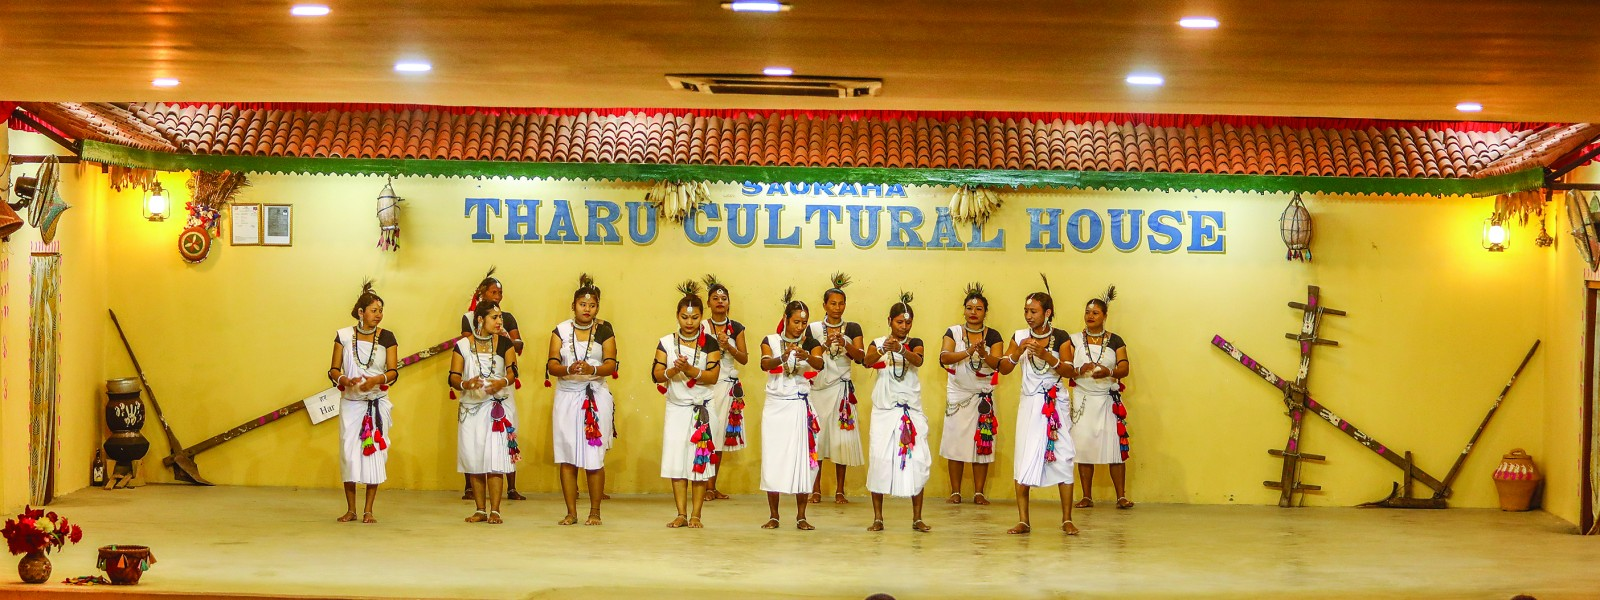 tharu-culture-isewa-travel.jpg